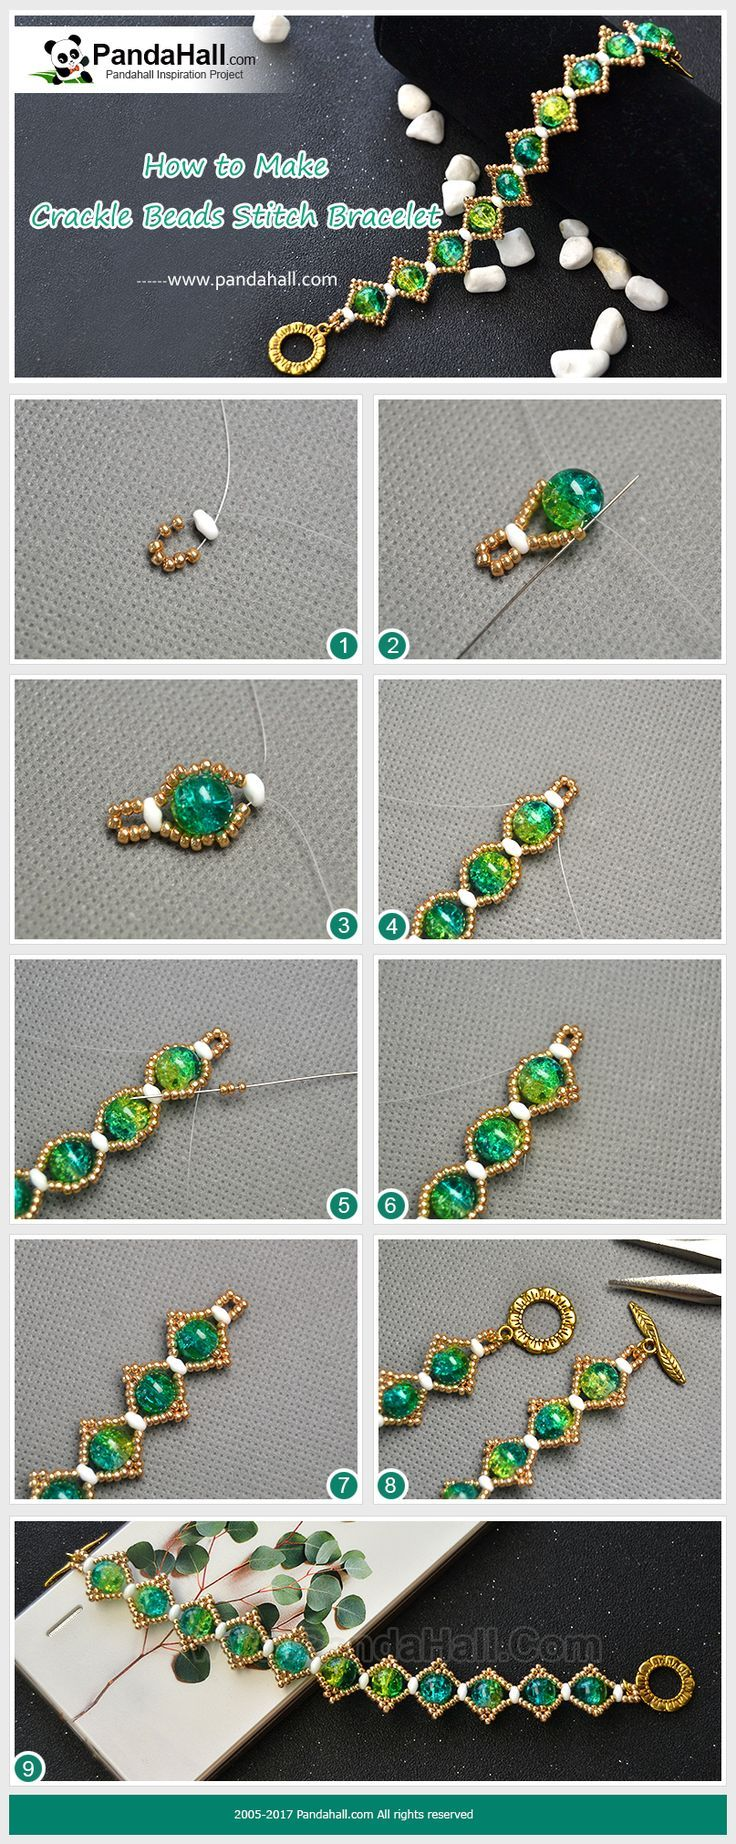 How to Make Crackle Beads Stitch Bracelet The main materials of the bracelet are crackle beads, 2-hole seed beads, gold round seed beads and fishing wires. With